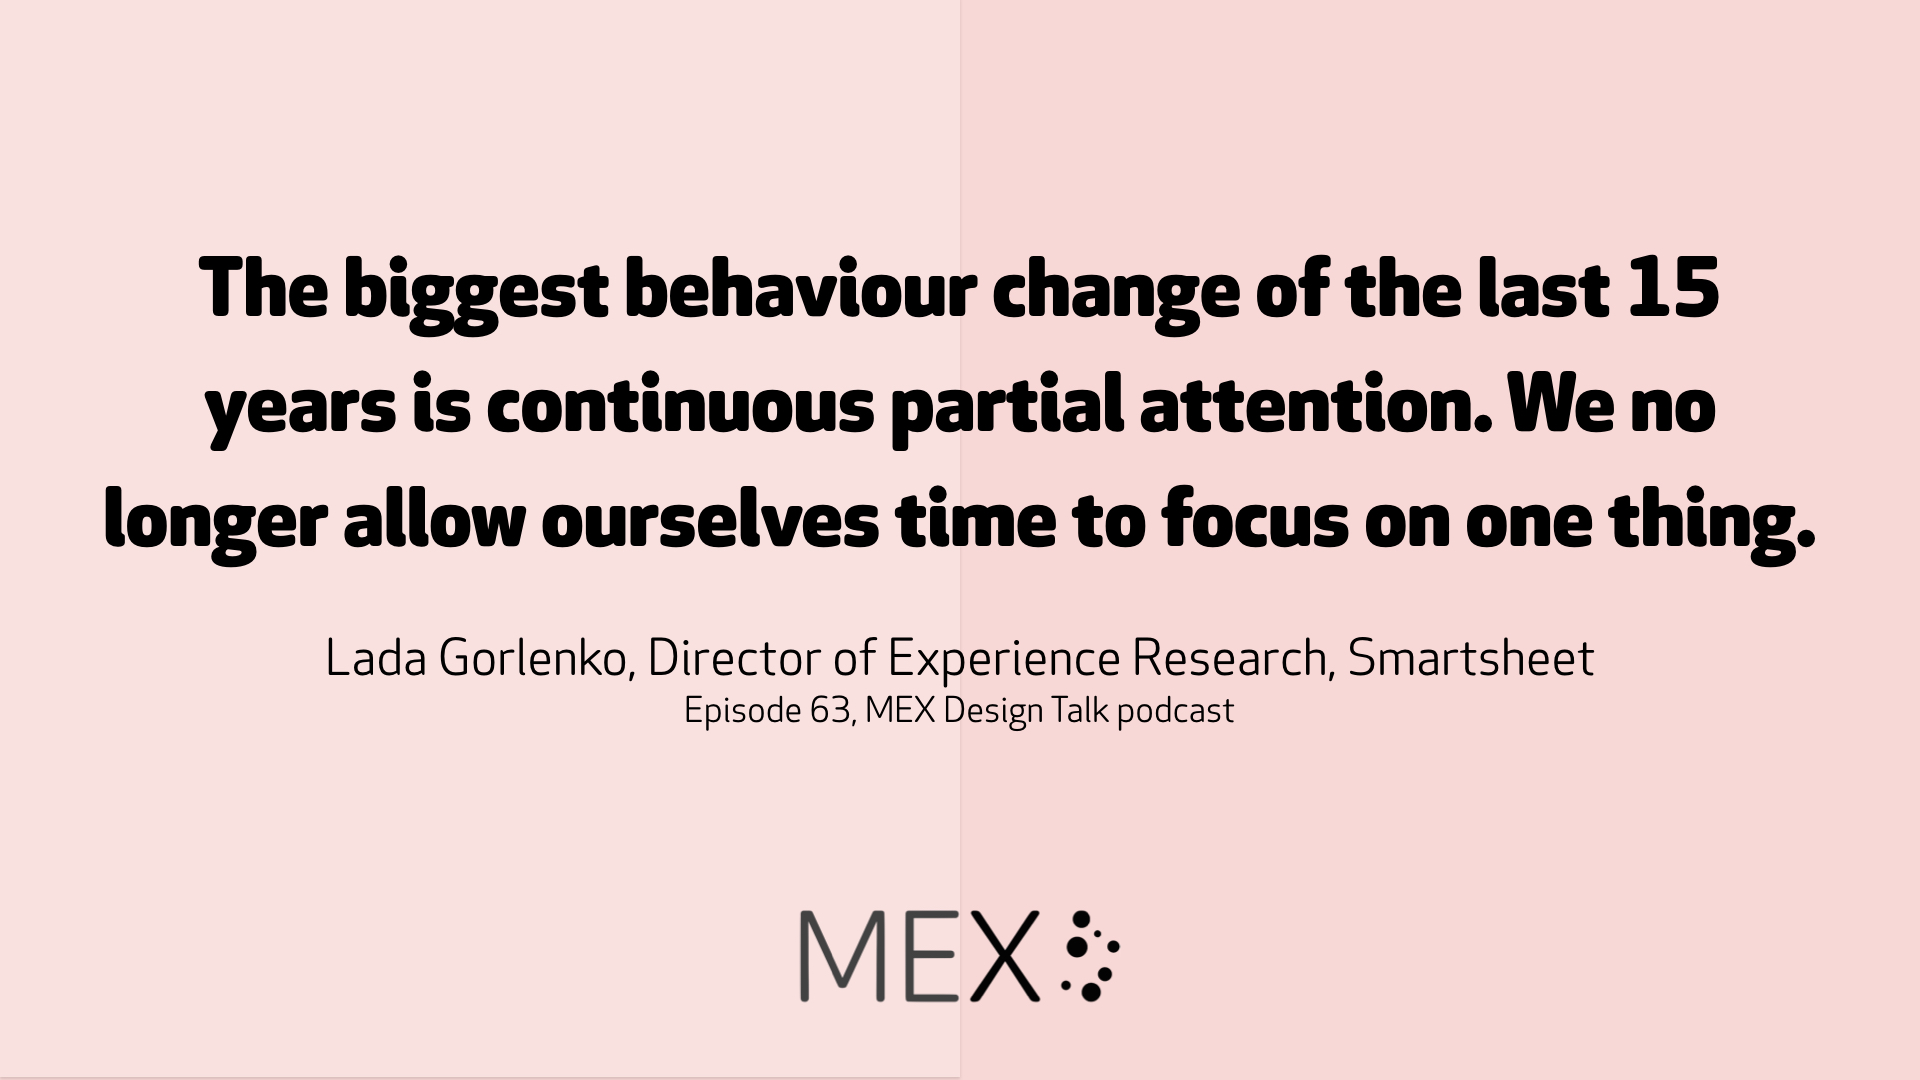 The biggest behaviour change of the last 15 years is continuous partial attention. We no longer allow ourselves time to focus on one thing. Lada Gorlenko, Director of Experience Research, Smartsheet Episode 63, MEX Design Talk podcast